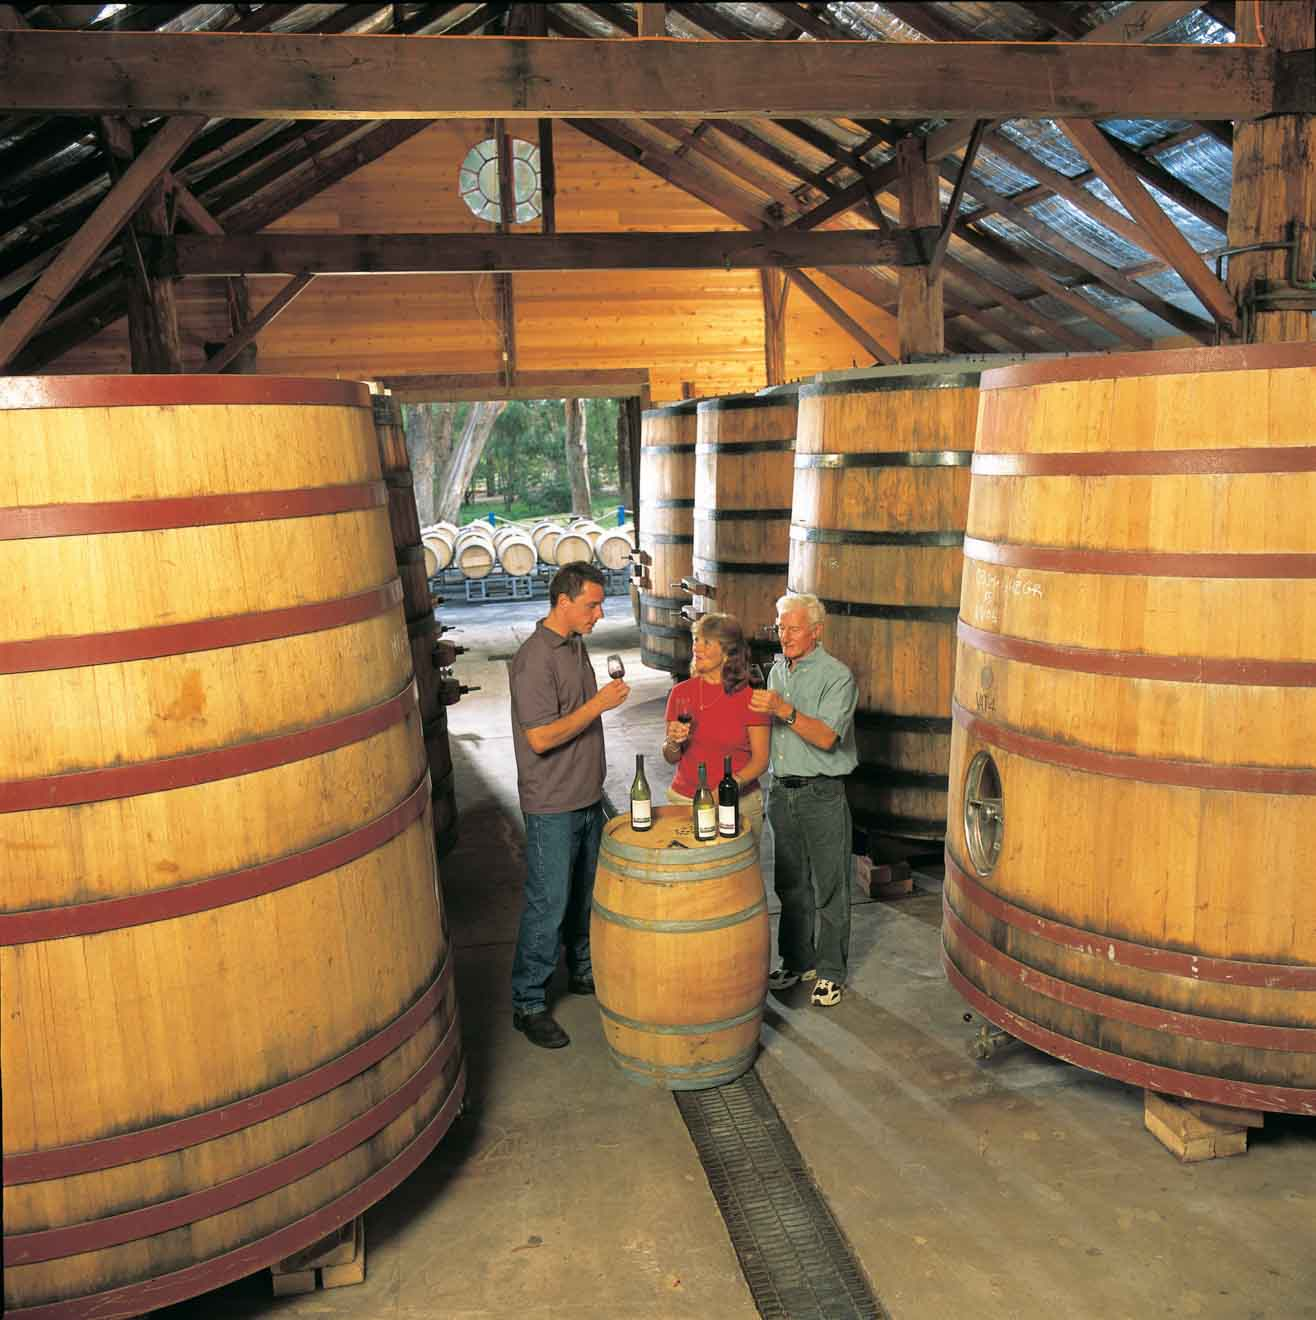 Things to do in western sa, Cape Mentelle winery Margaret River Wineries